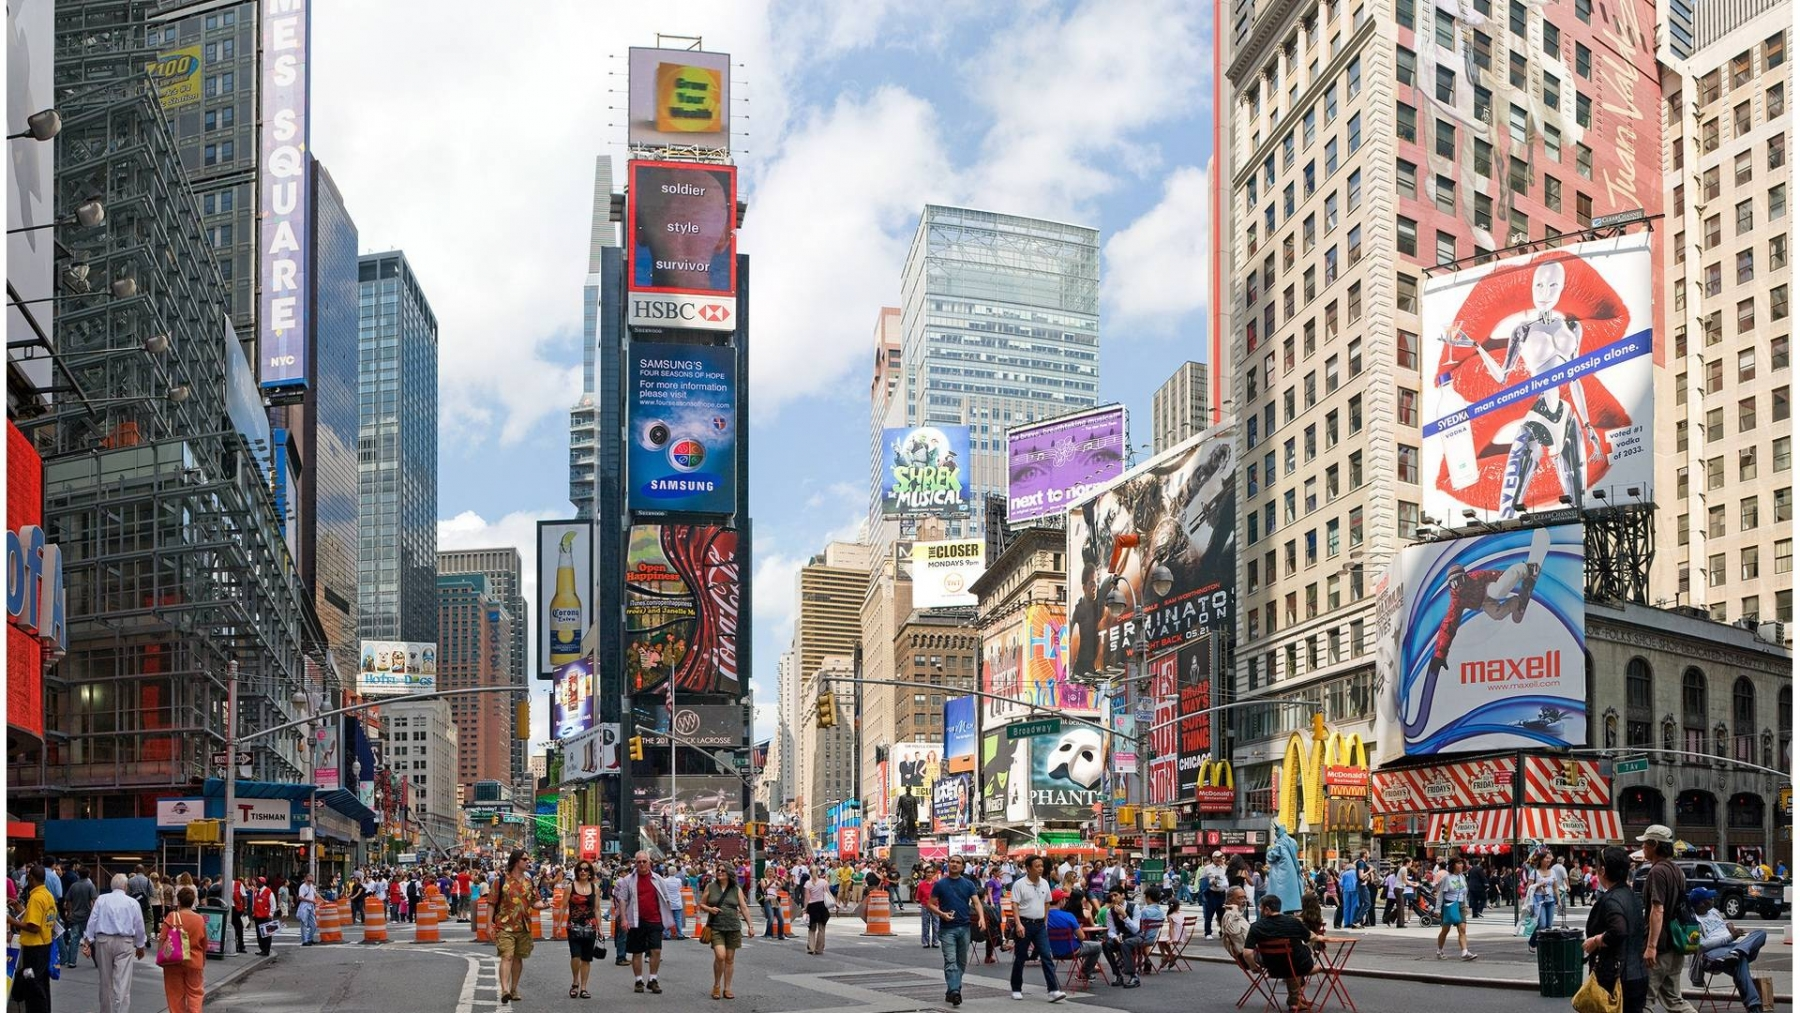 New York Background Hd Posted By Ethan Cunningham